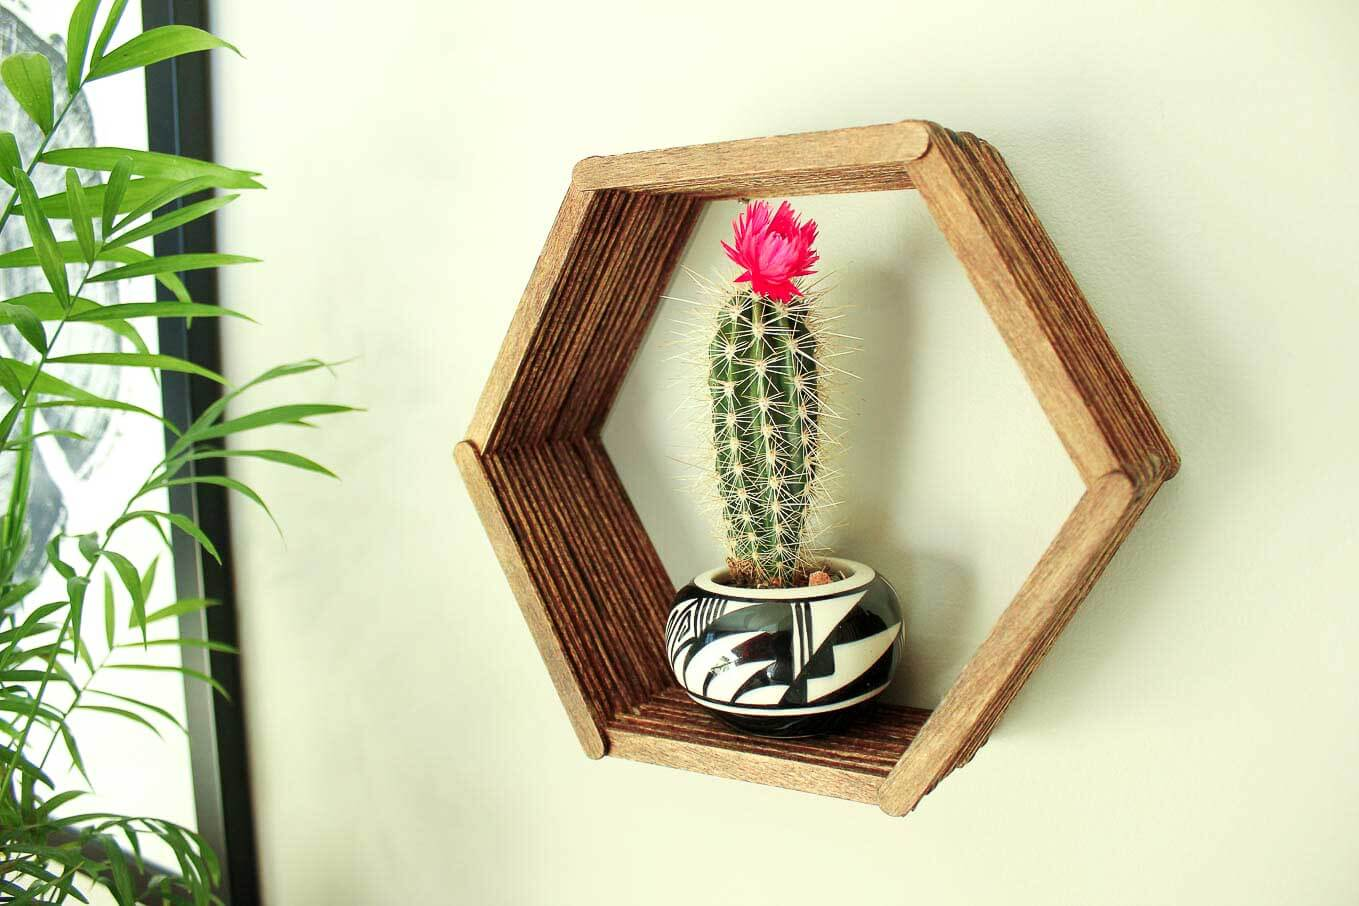 DIY art projects with Popsicle sticks